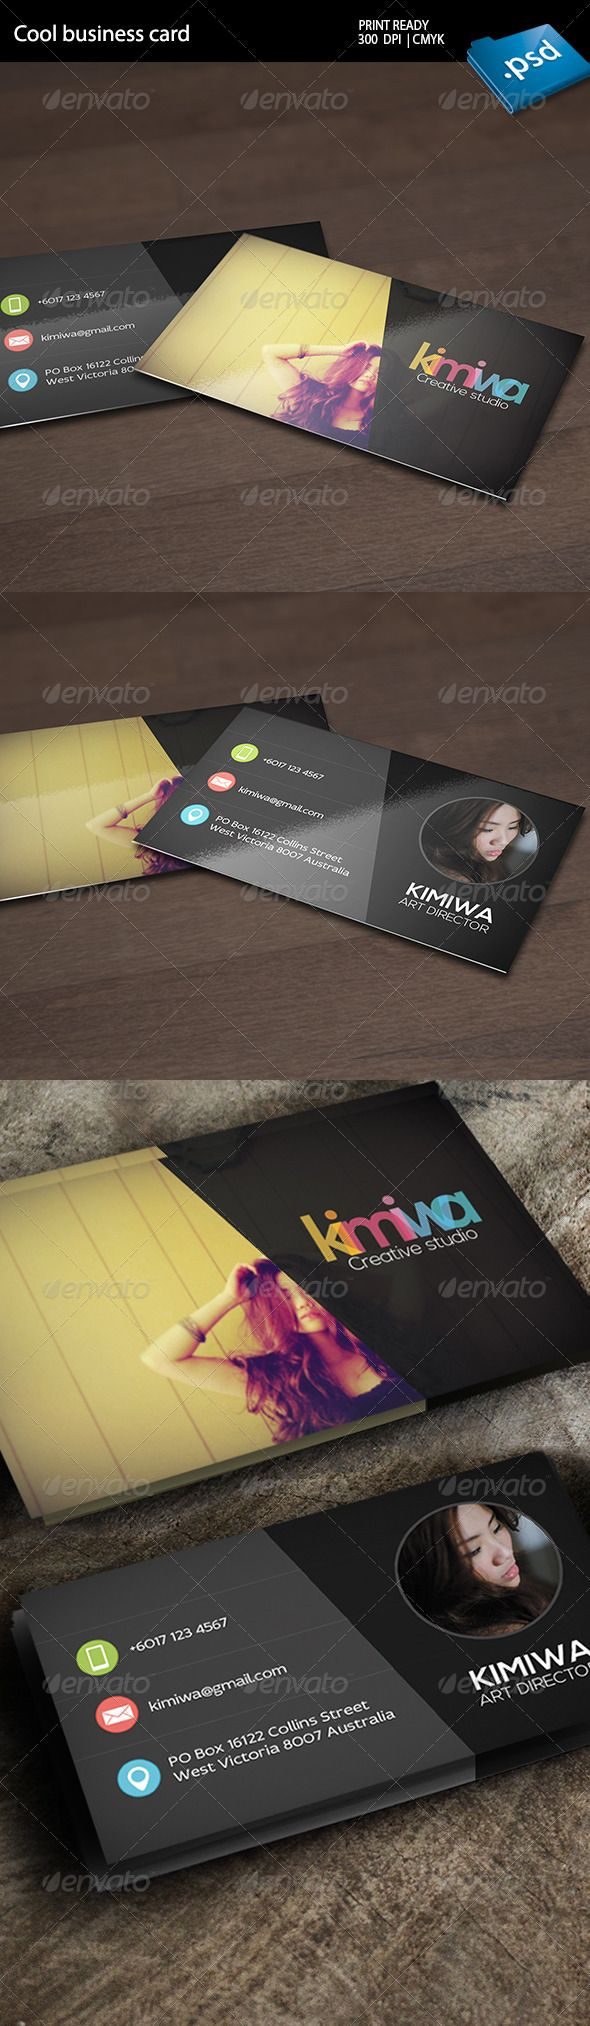 amazing business card designs for your inspiration